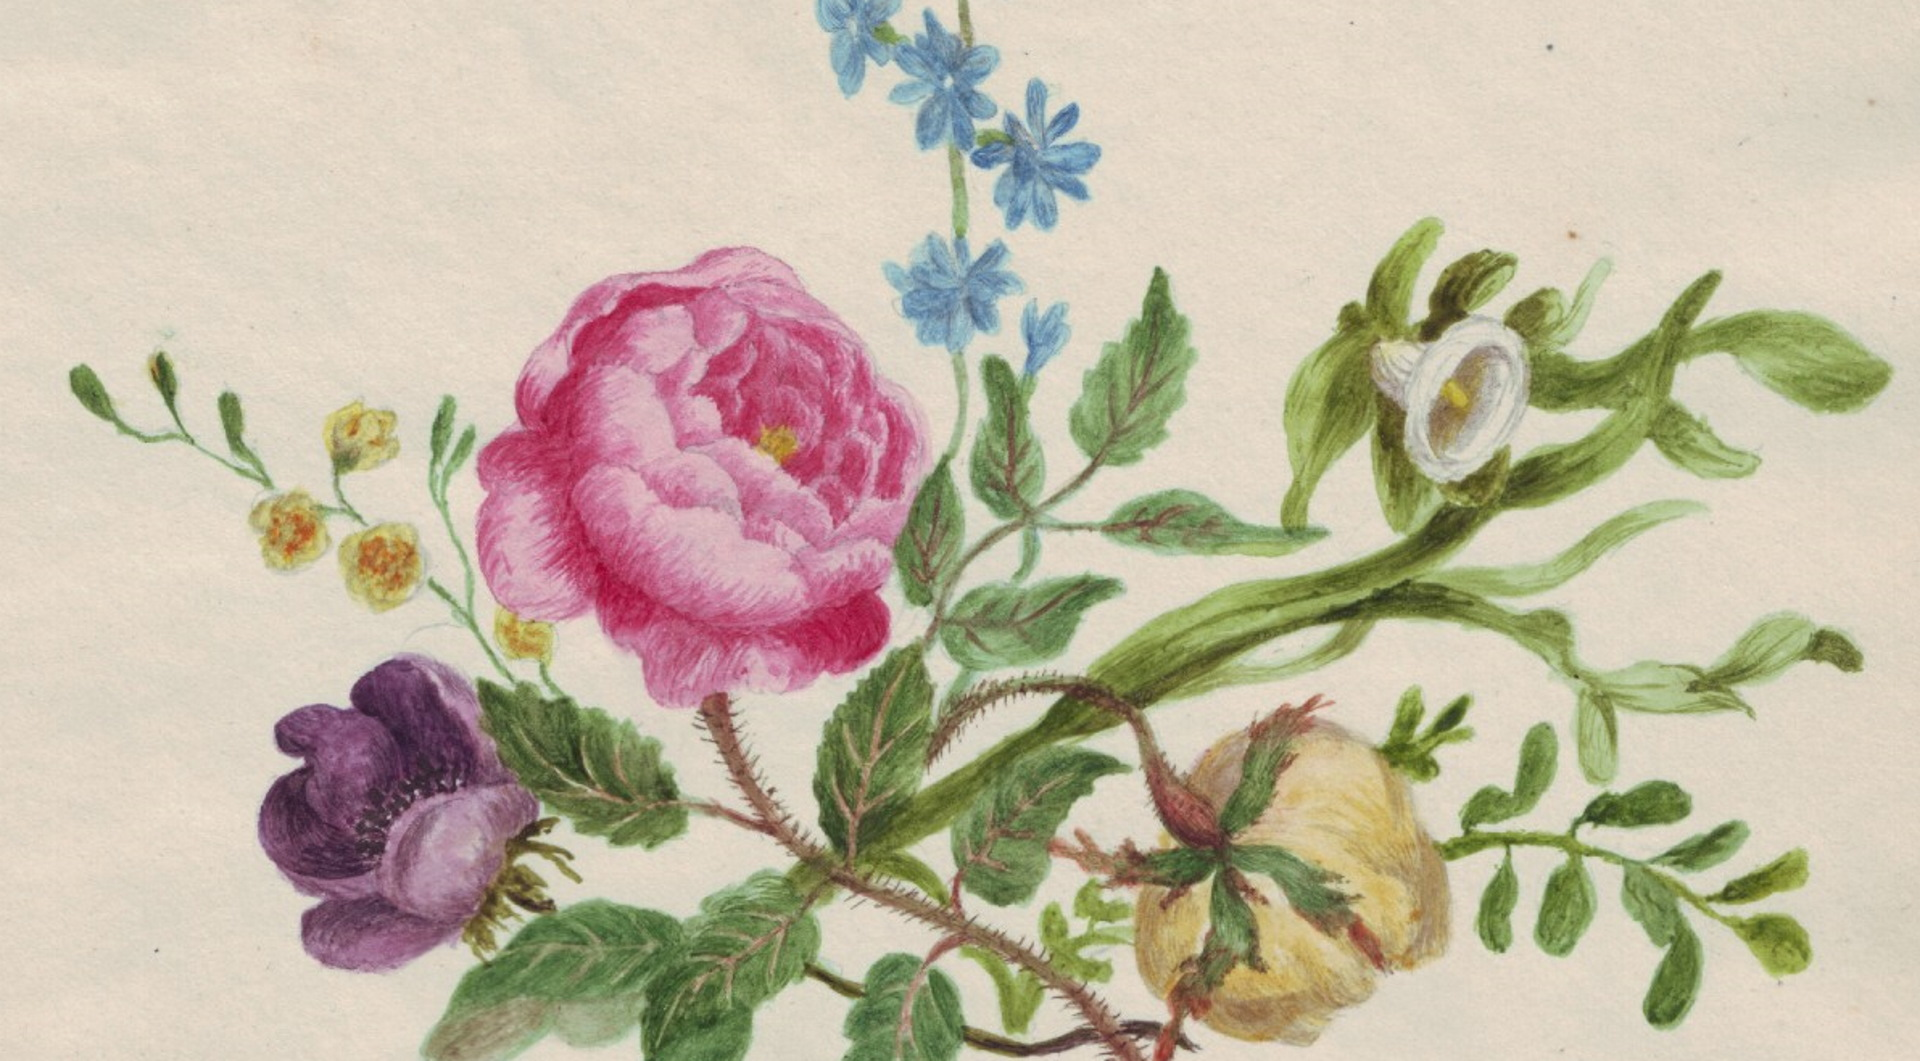 A painting of flowers